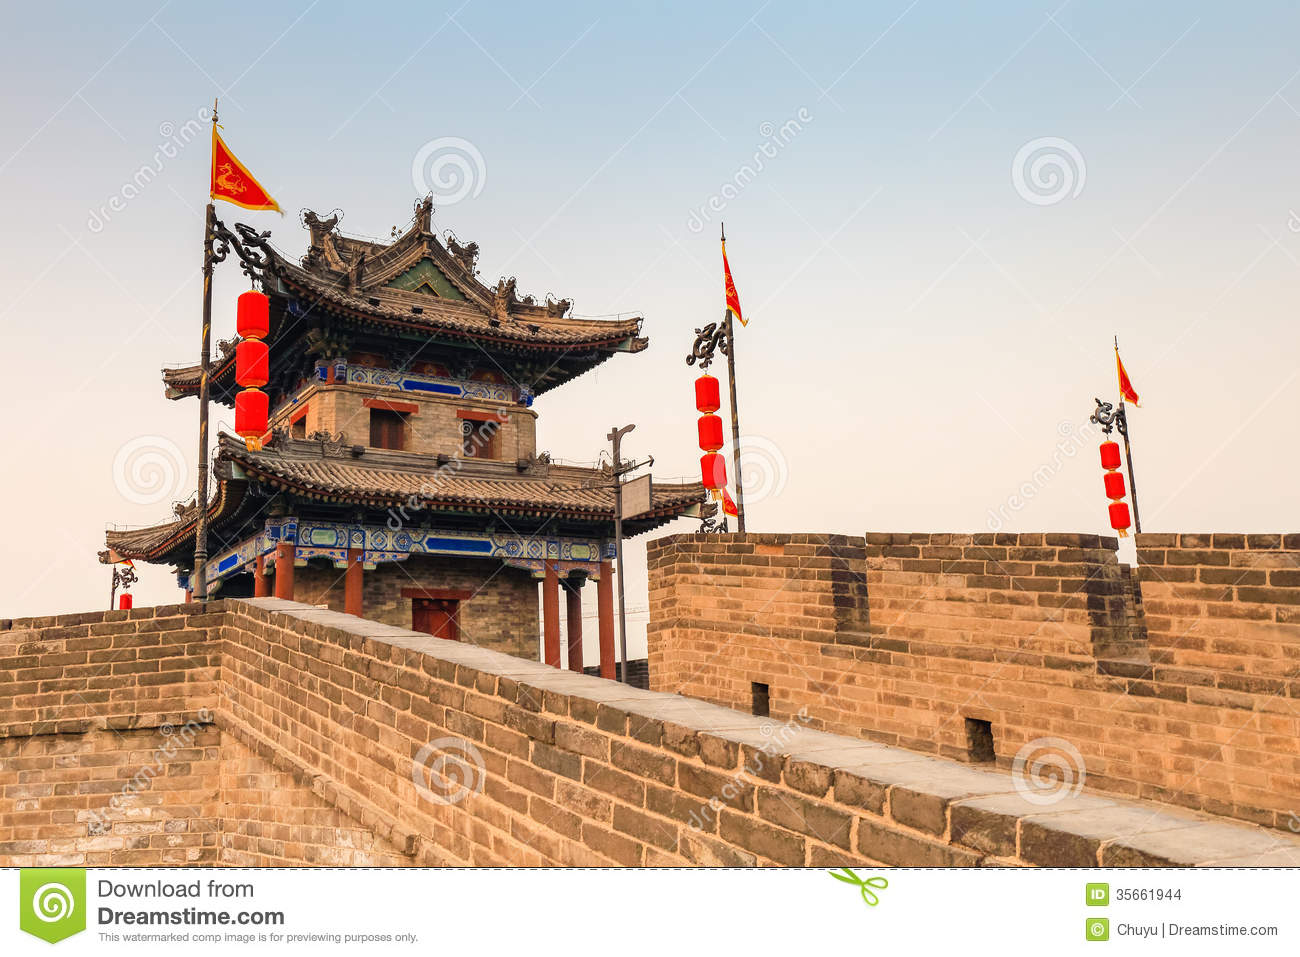 Xian Scenery On The Ancient City Wall Royalty Free Stock Image.